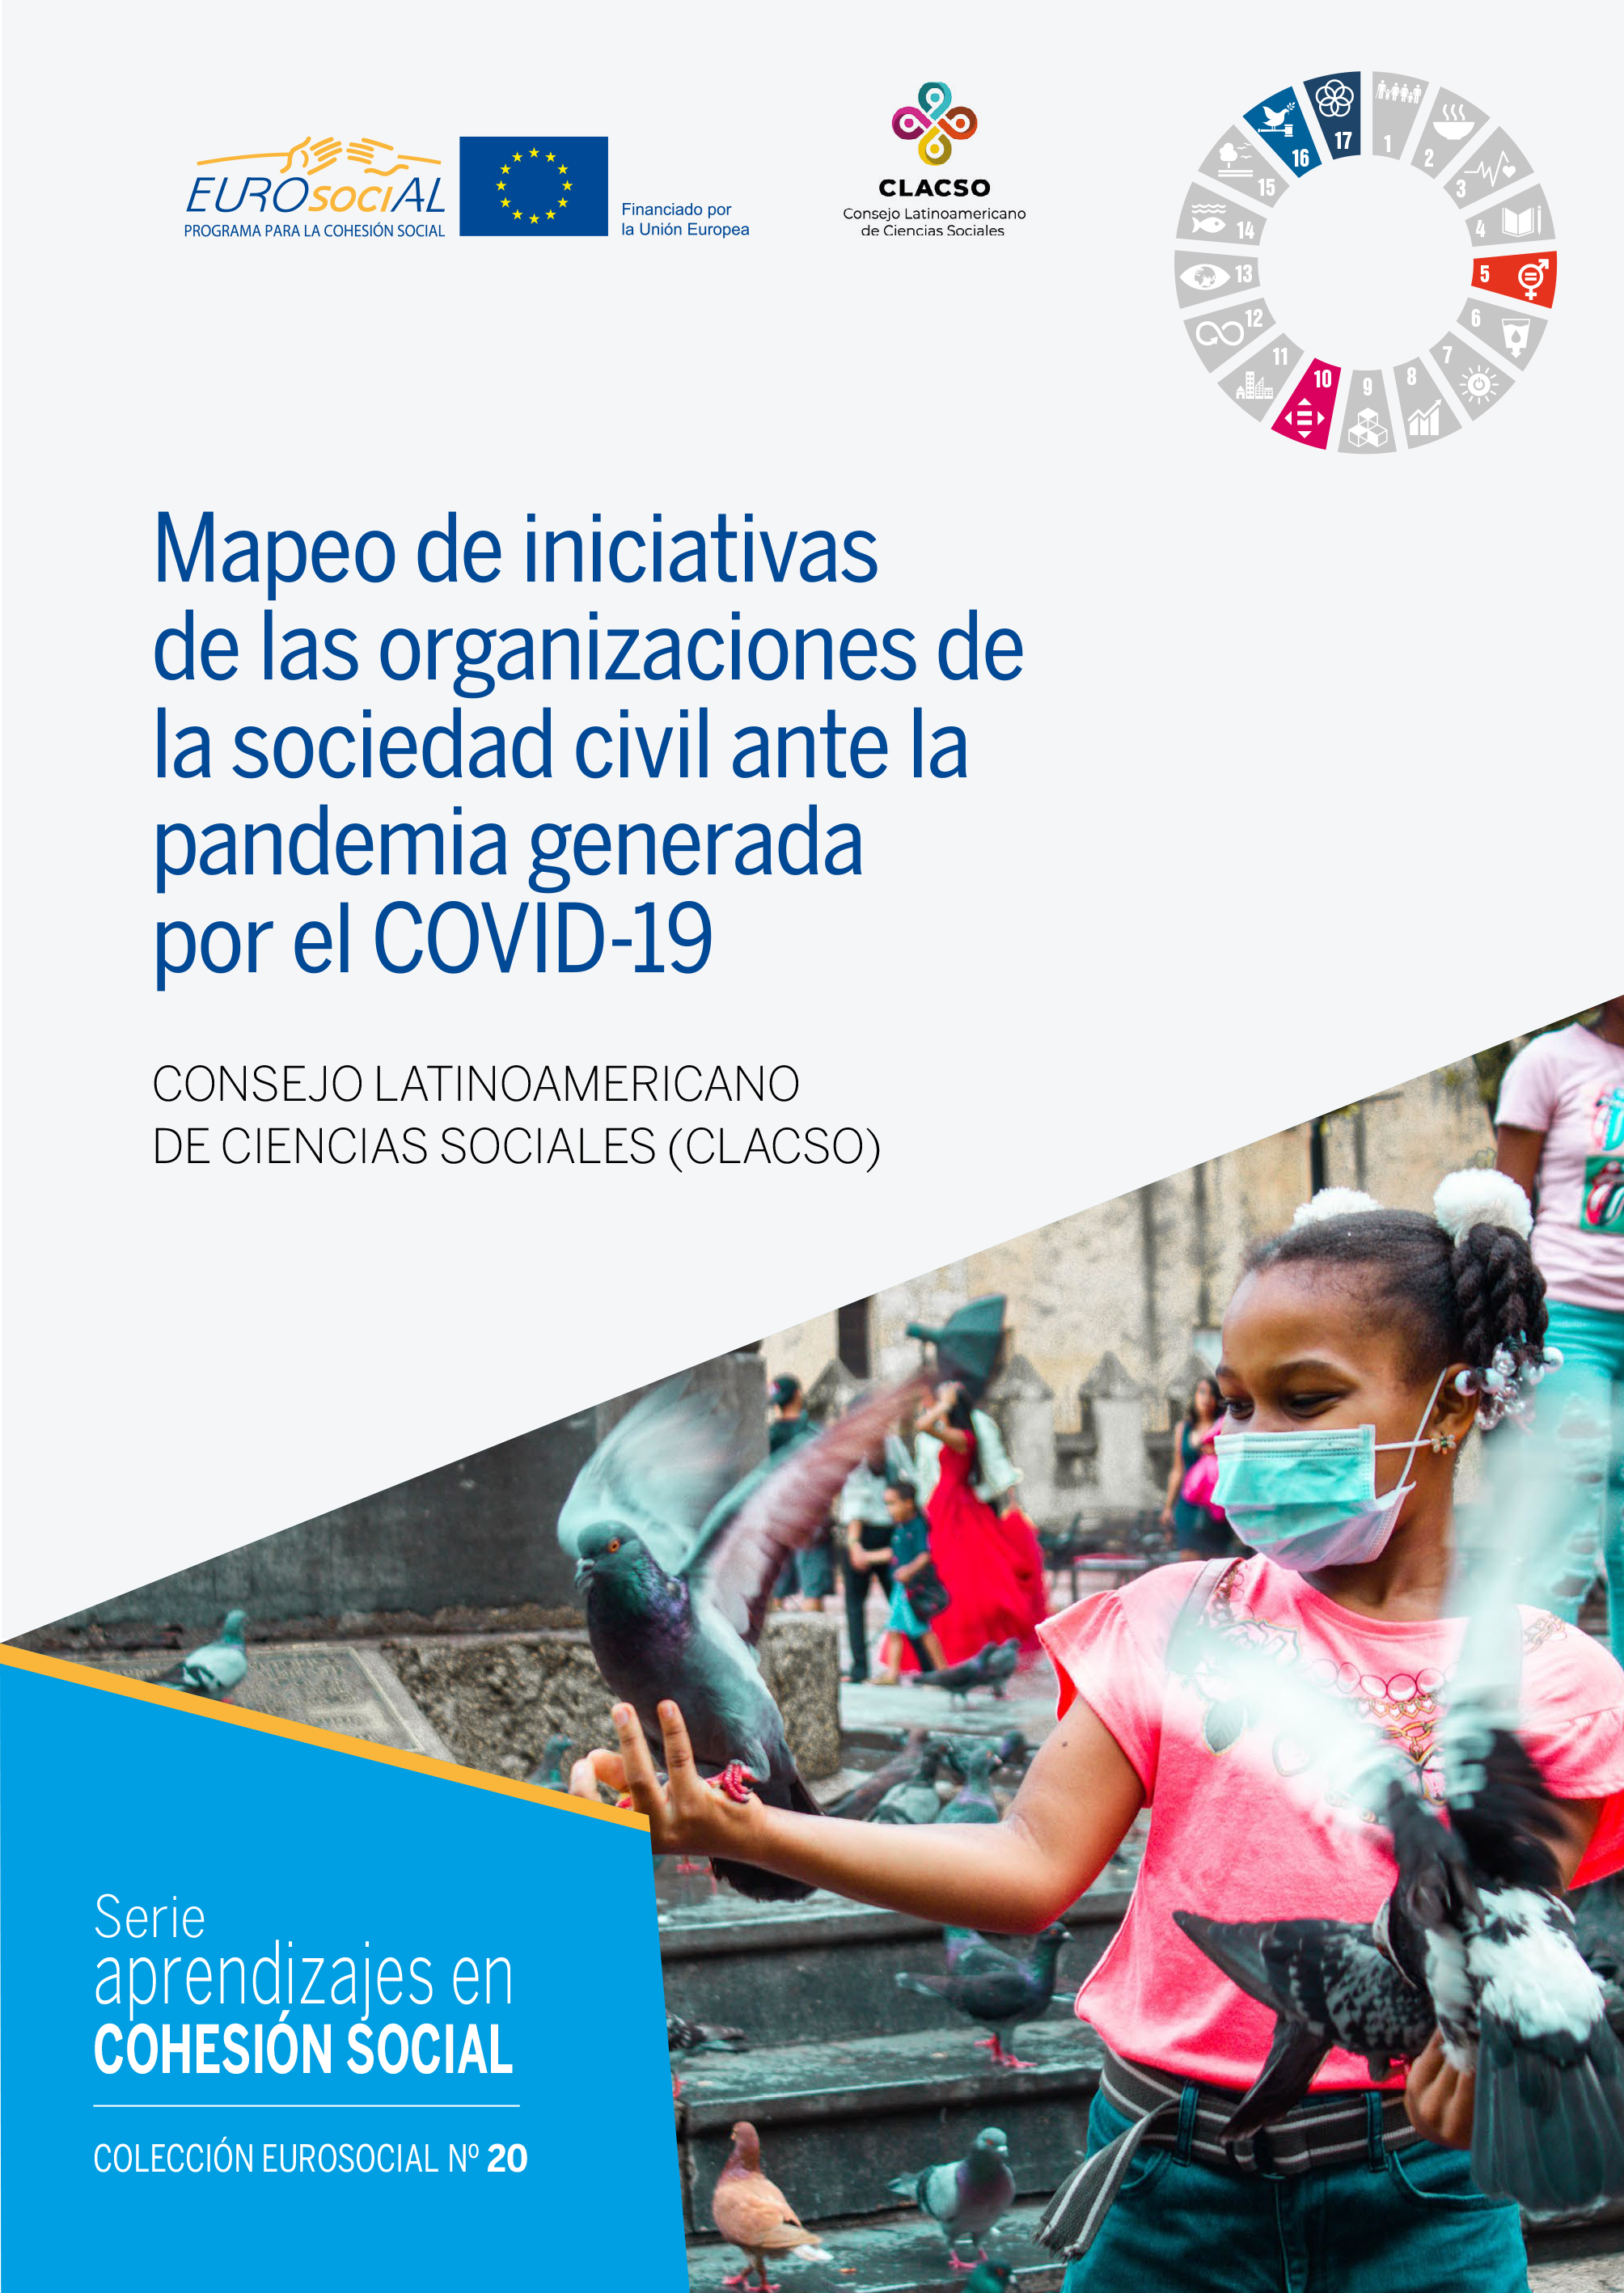 Initiatives of civil society organizations in Latin America in the face of the pandemic